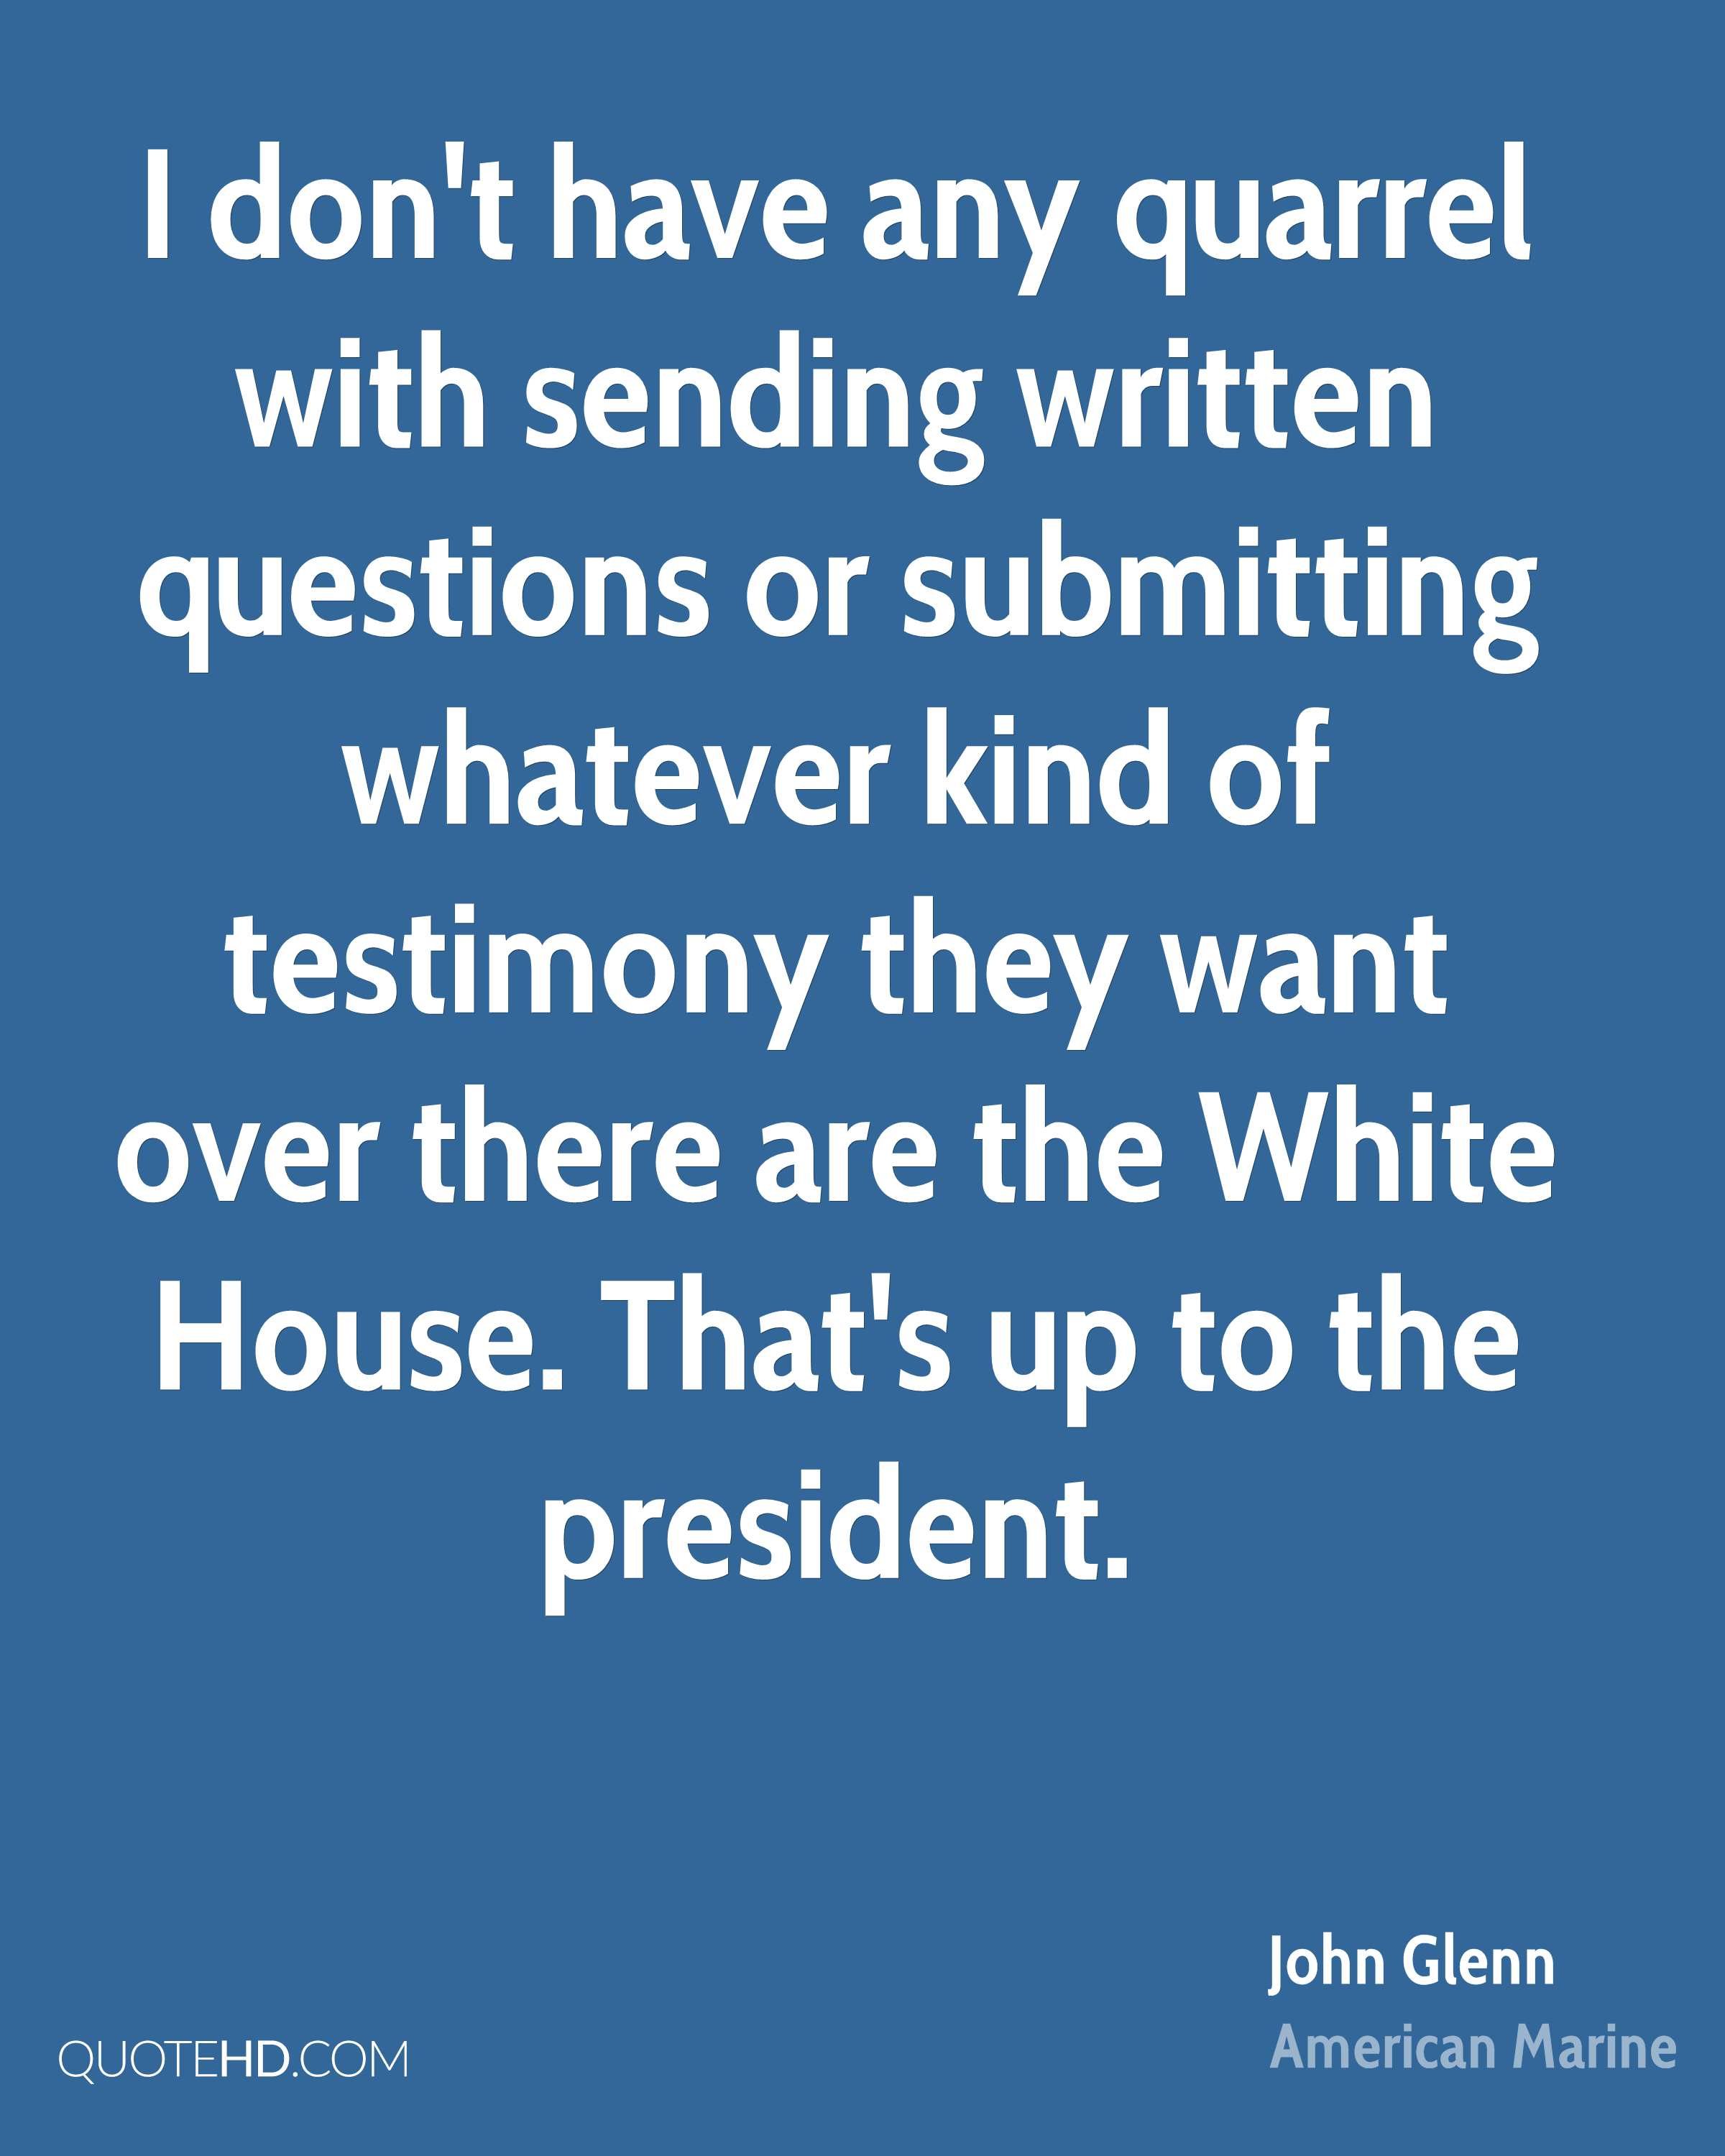 I don't have any quarrel with sending written questions or submitting whatever kind of testimony they want over there are the White House. That's up to the president.